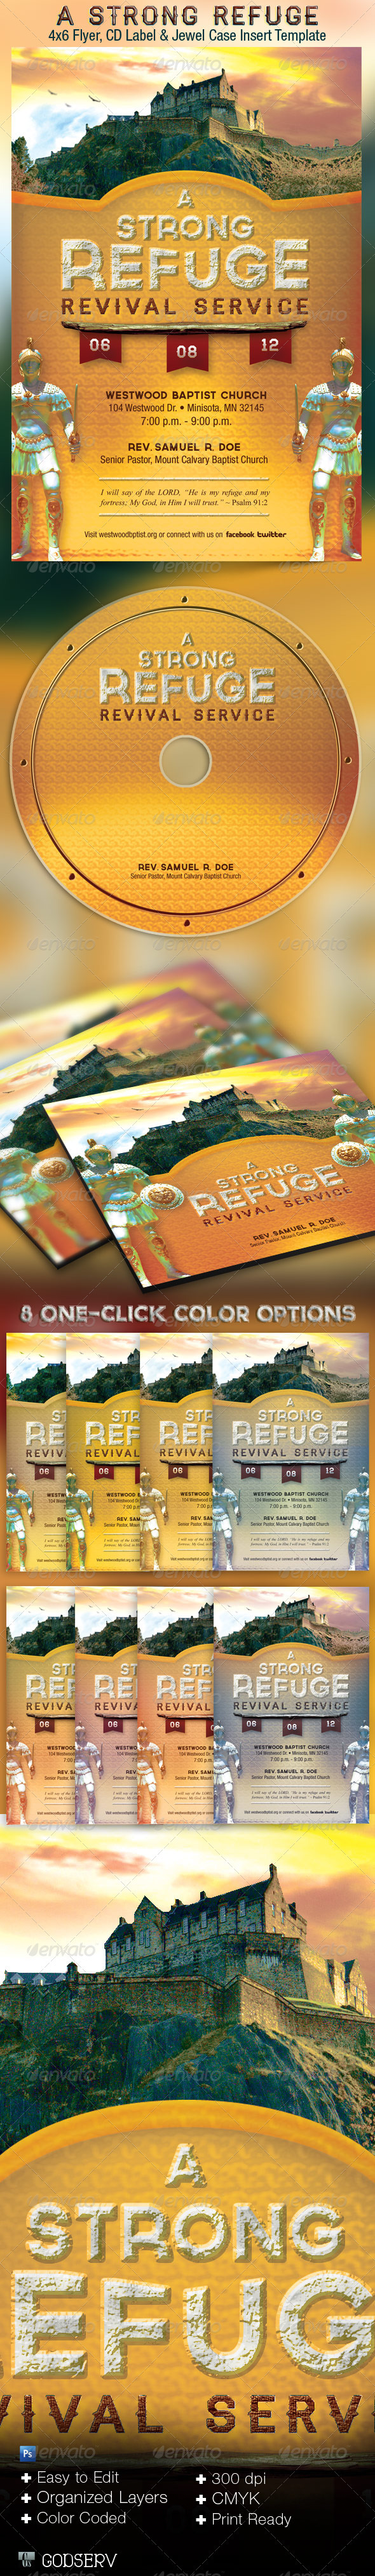 A Strong Refuge Revival Service Flyer and CD